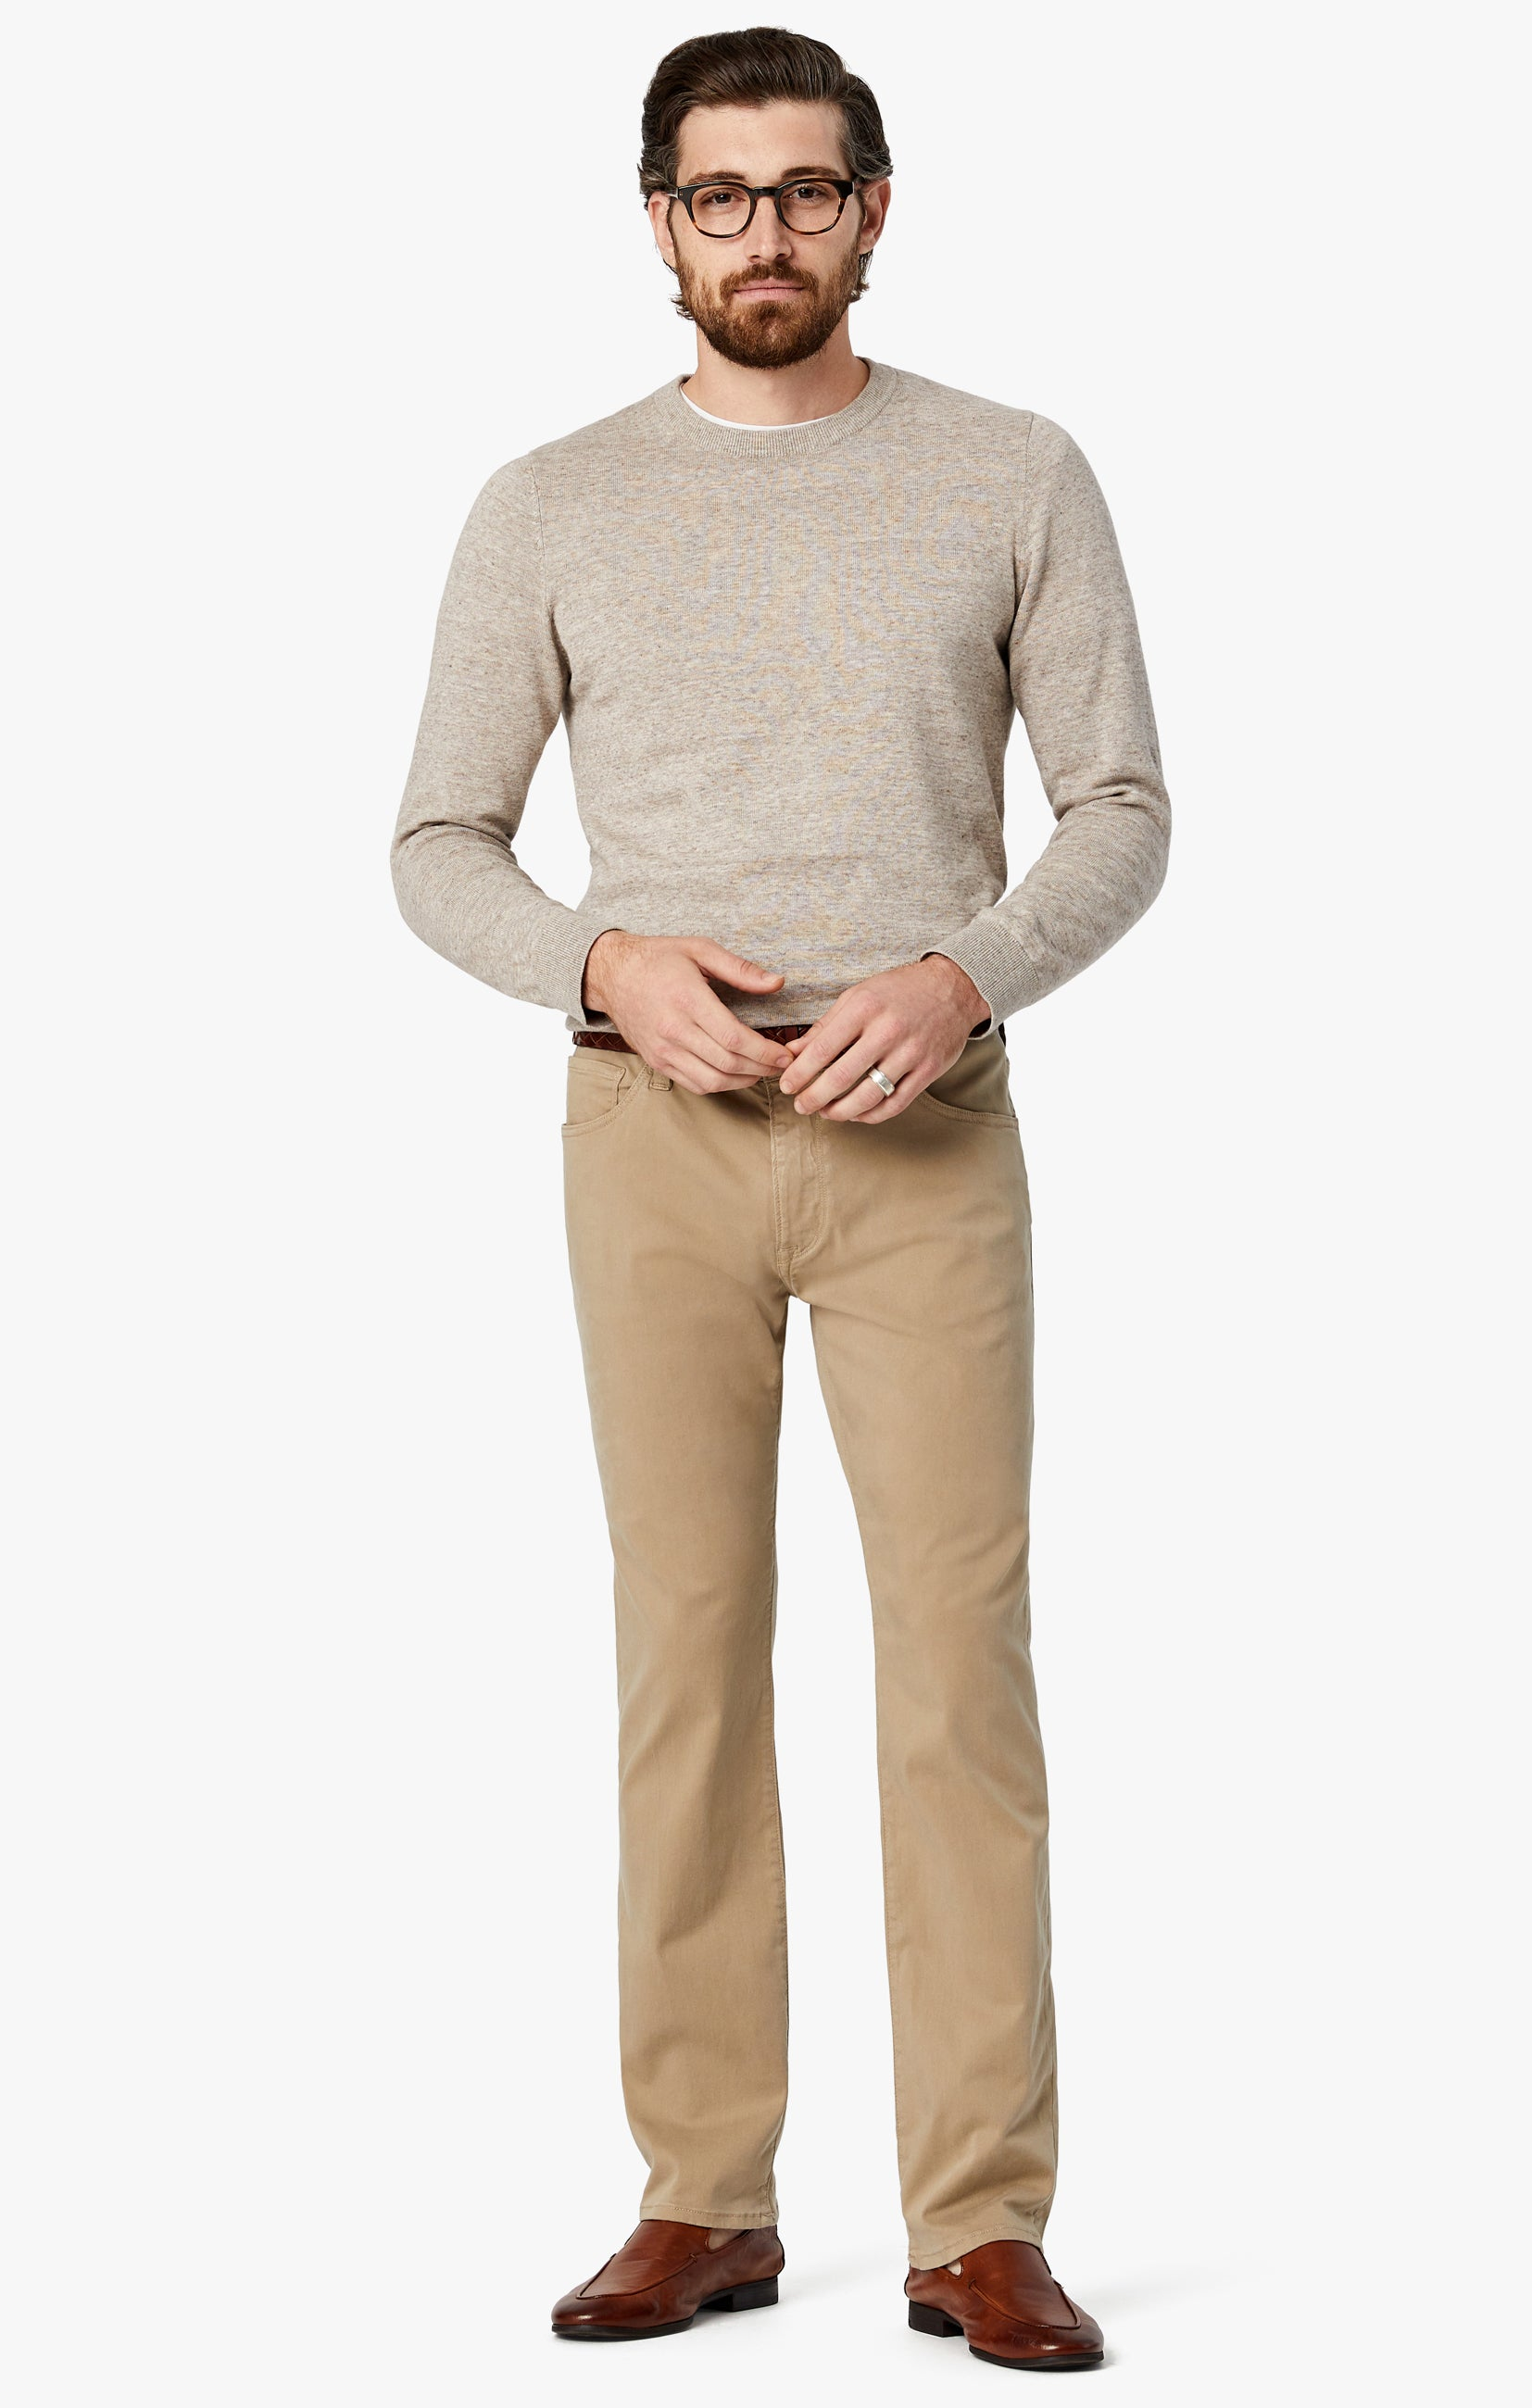 Courage Straight Leg Pants in Sand Twill Image 1